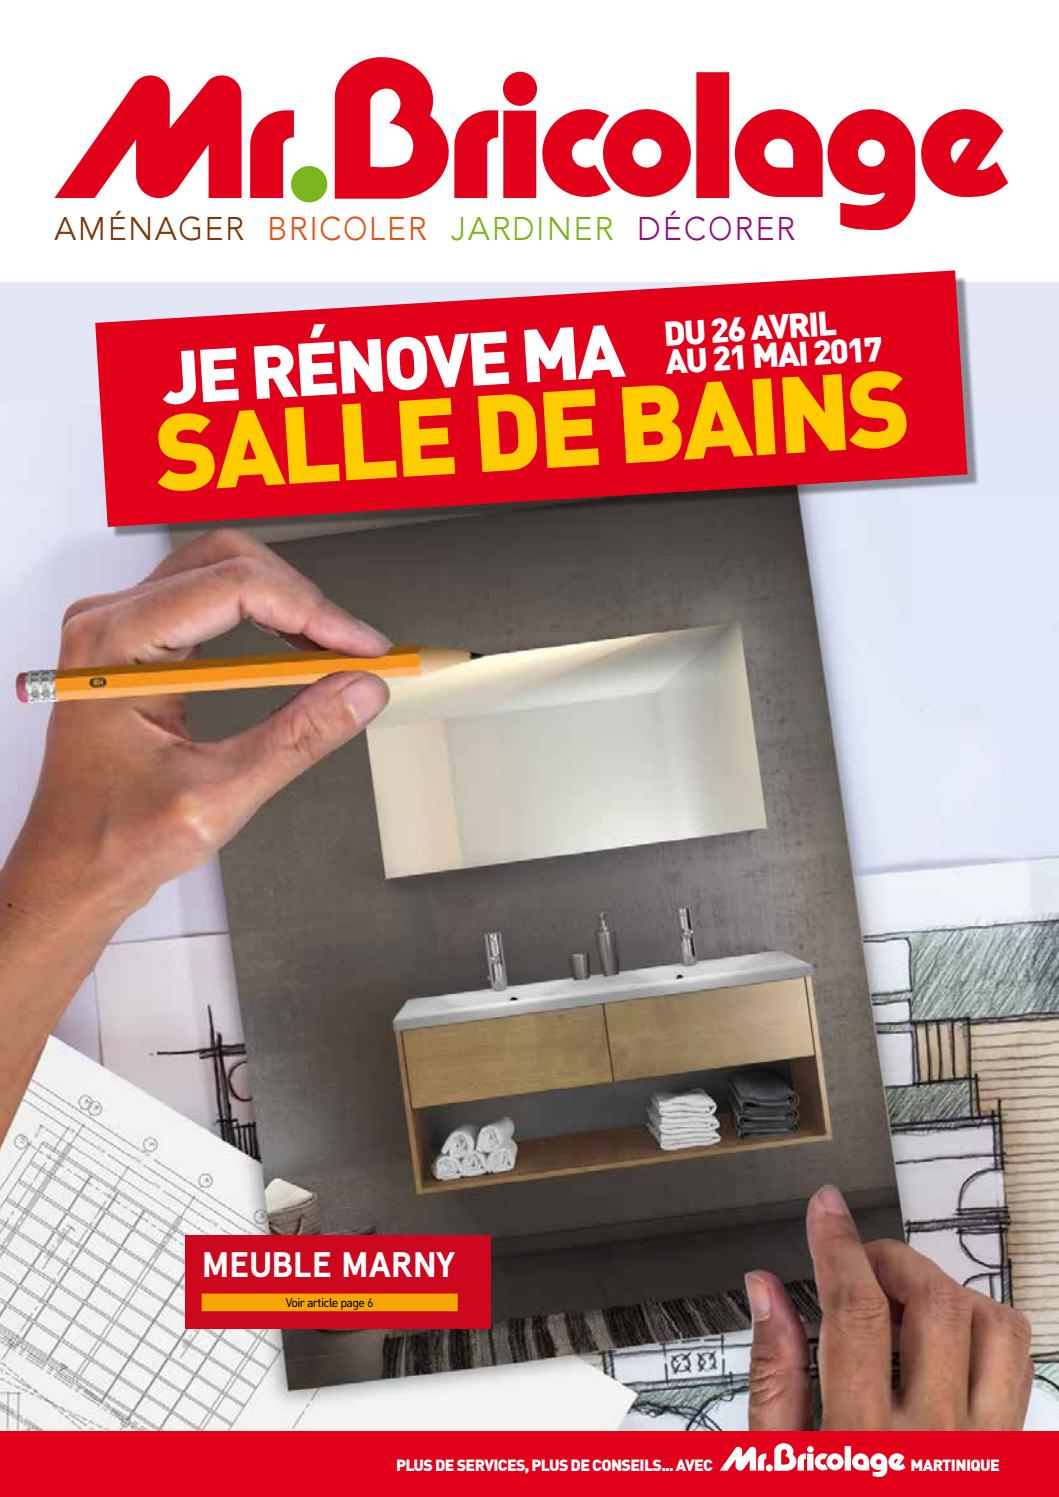 mr bricolage martinique je renove ma salle de bains du 26 avril au 31 mai 2017 by momentum. Black Bedroom Furniture Sets. Home Design Ideas